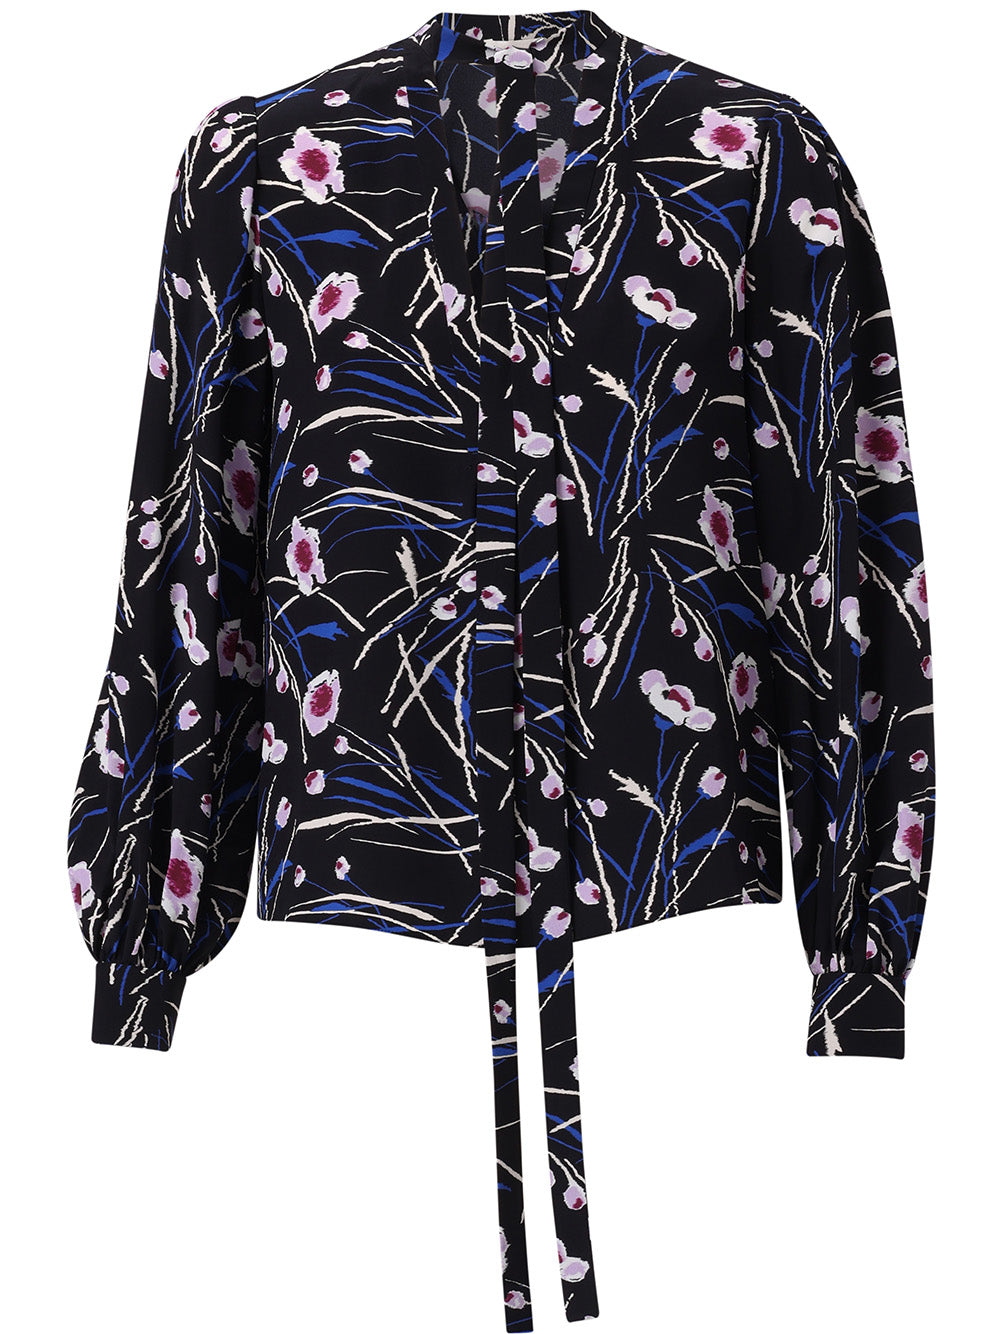 STEM FLORAL PRINTED SILK CDC LONG SLEEVE TOP WITH NECK TIE